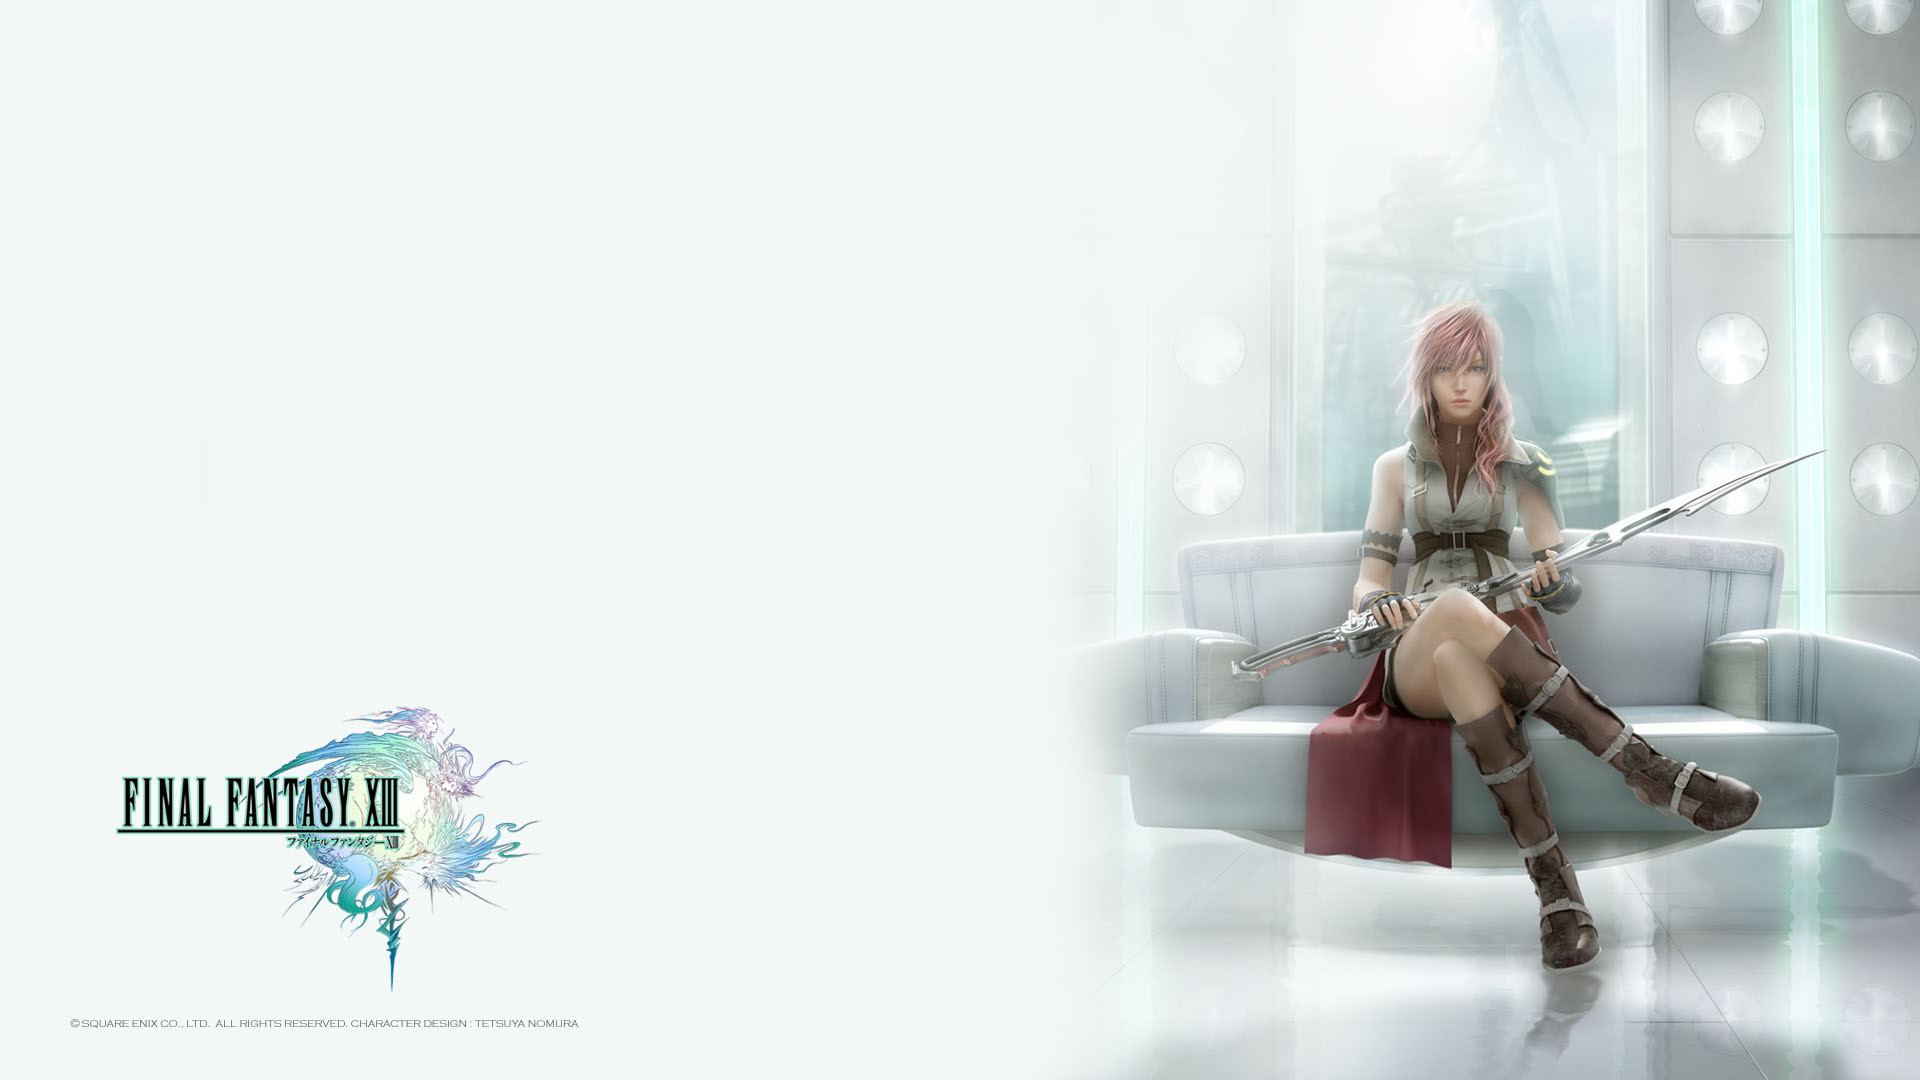 1920x1080 Final Fantasy 13 2 Vanille #11060 Wallpaper | Game .